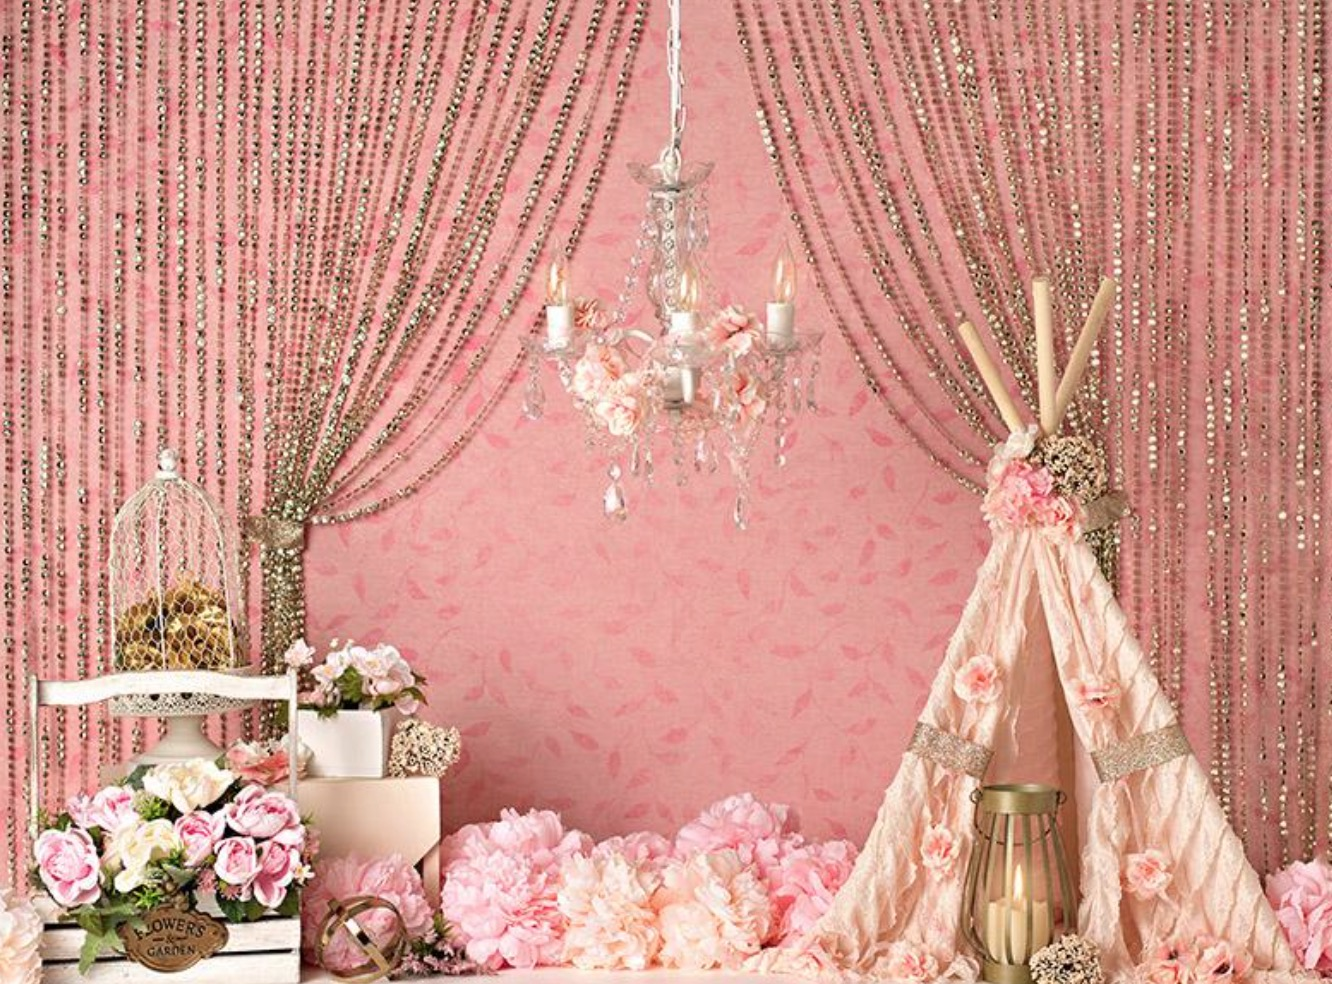 Blush Crush Decor - 60Hx80W